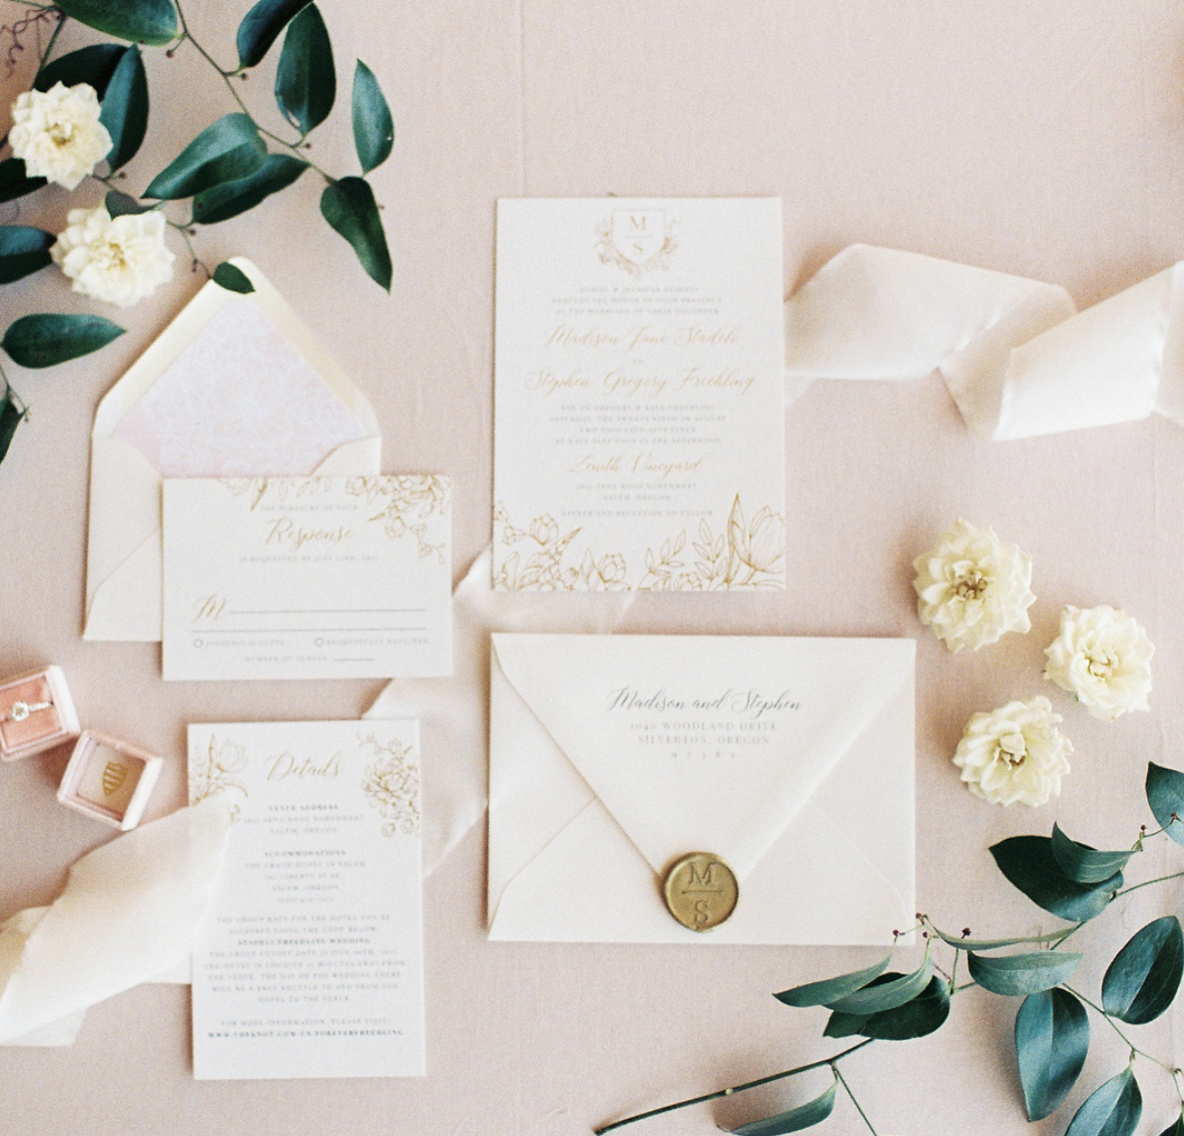 Photo by Jami Rae Photo, Invitation by Letters & Dust, Styling by Swoon Event Design, Planning by Class Act Events